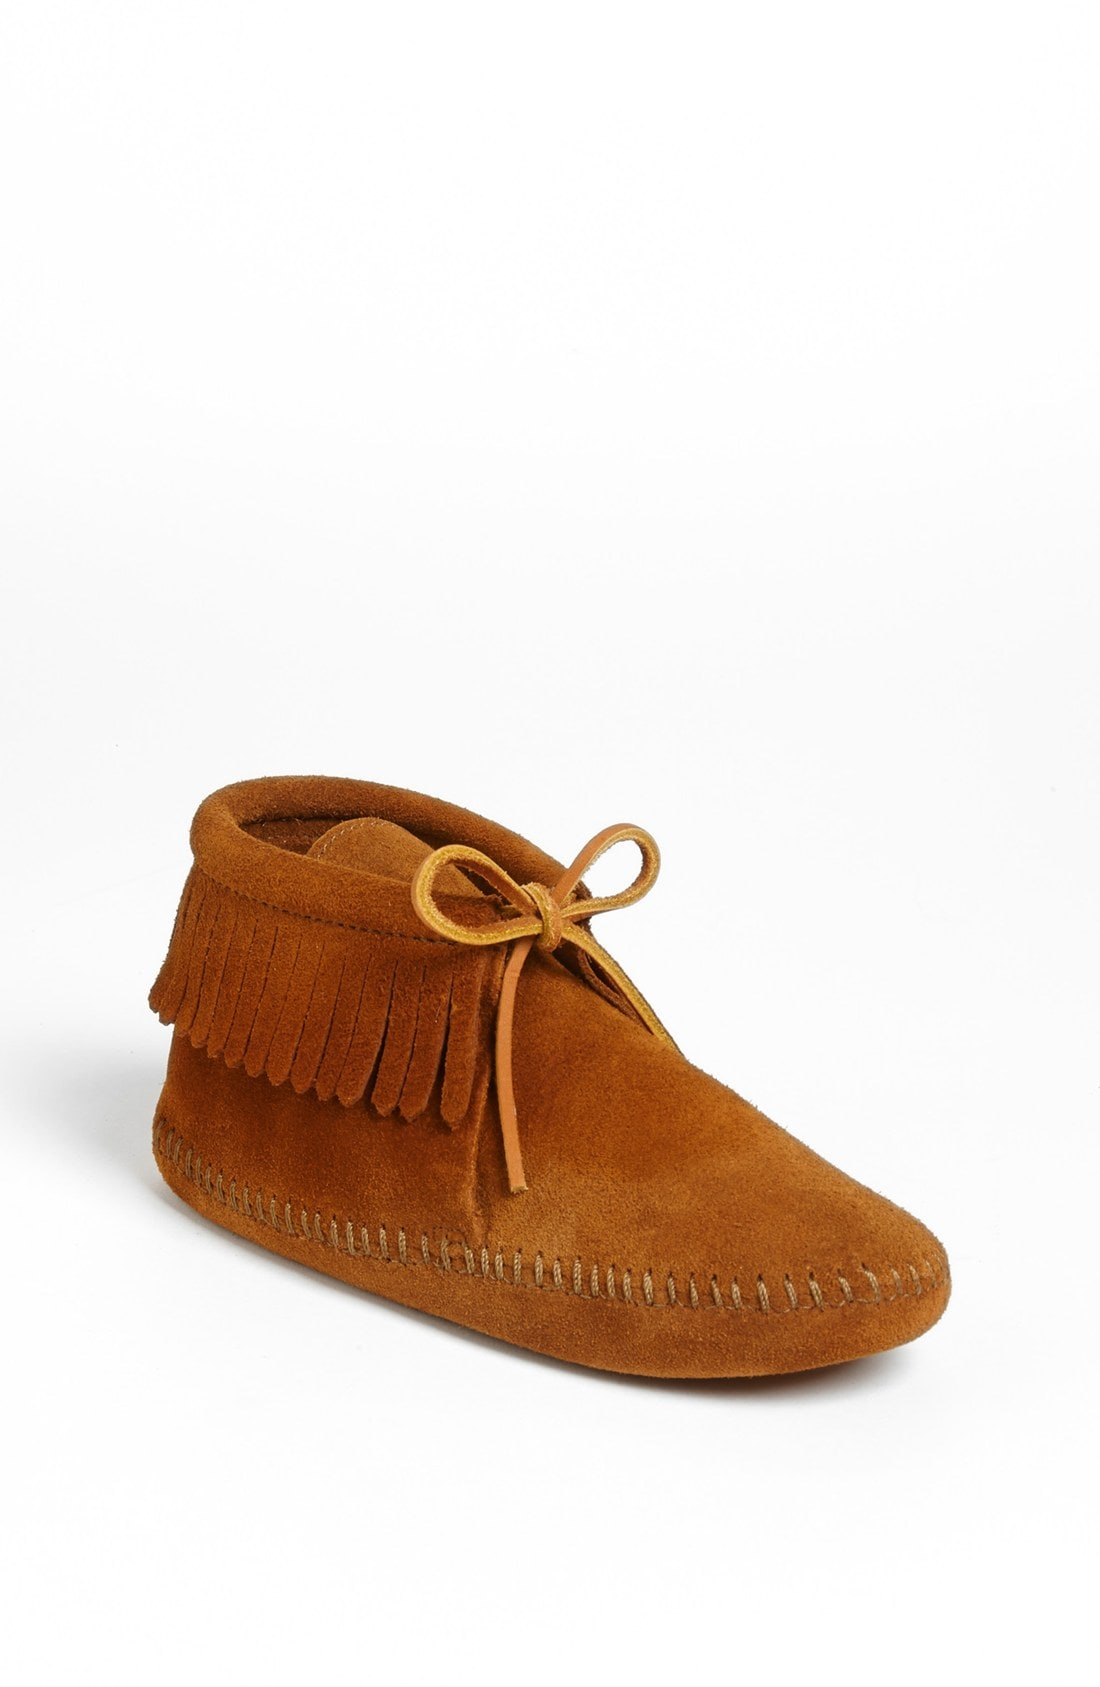 moccasin boots   Nordstrom